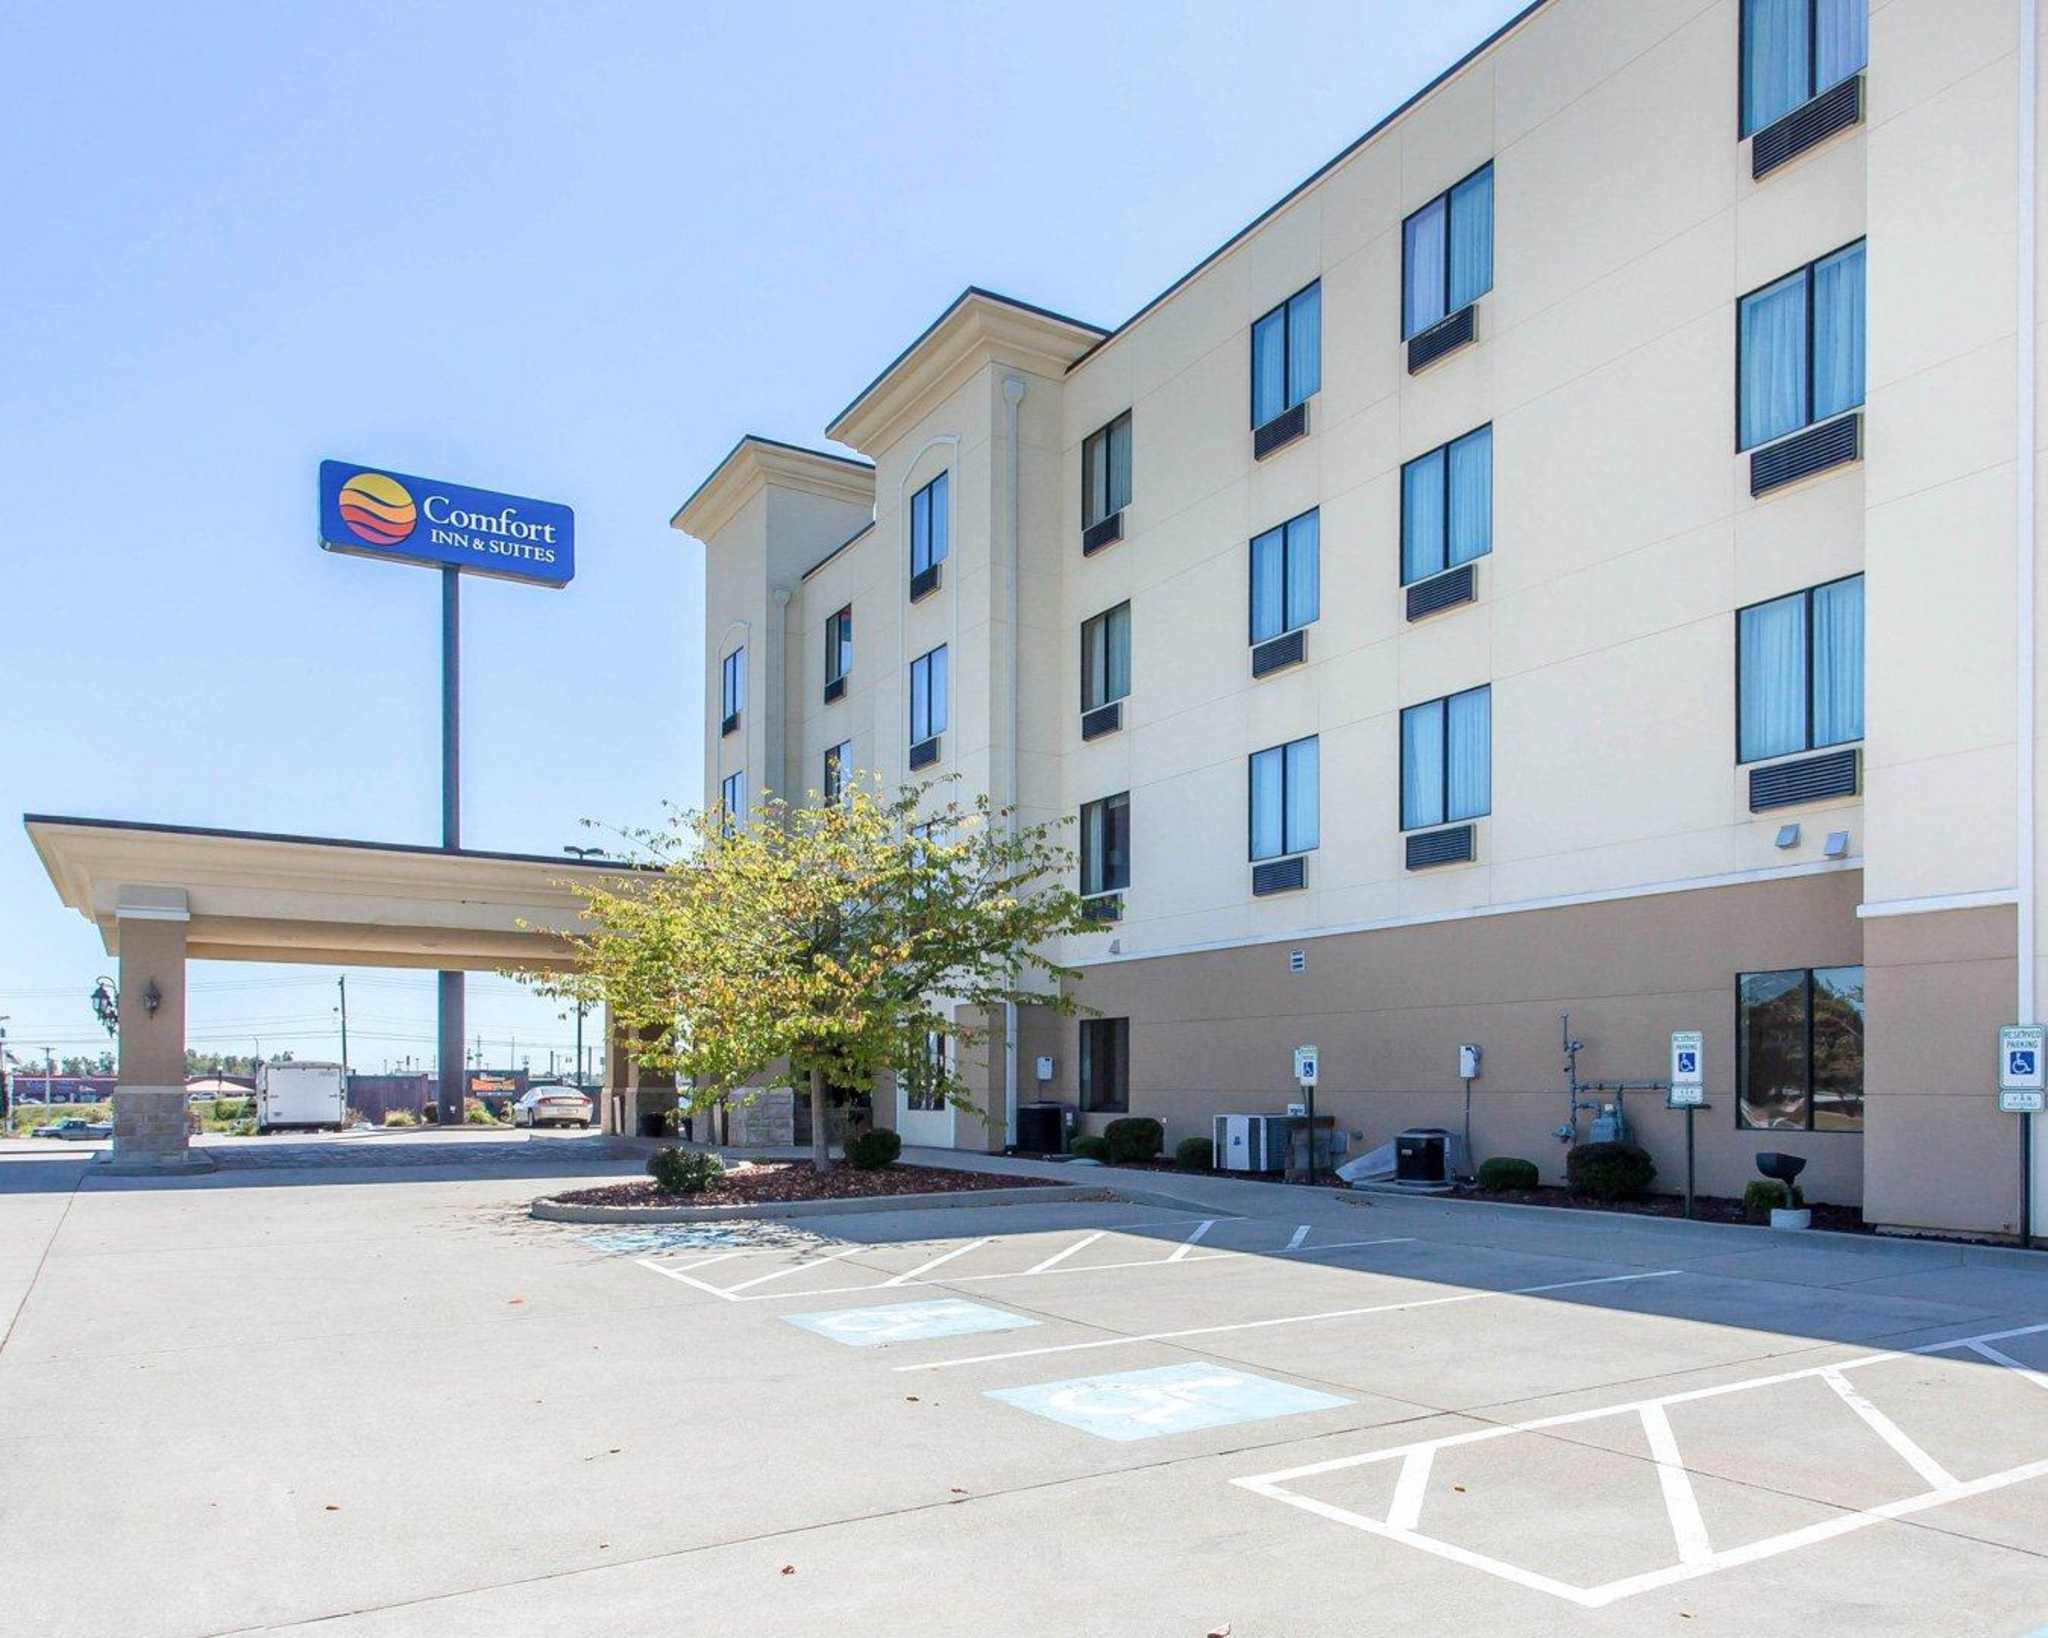 Comfort Inn Amp Suites Coupons Madisonville Ky Near Me